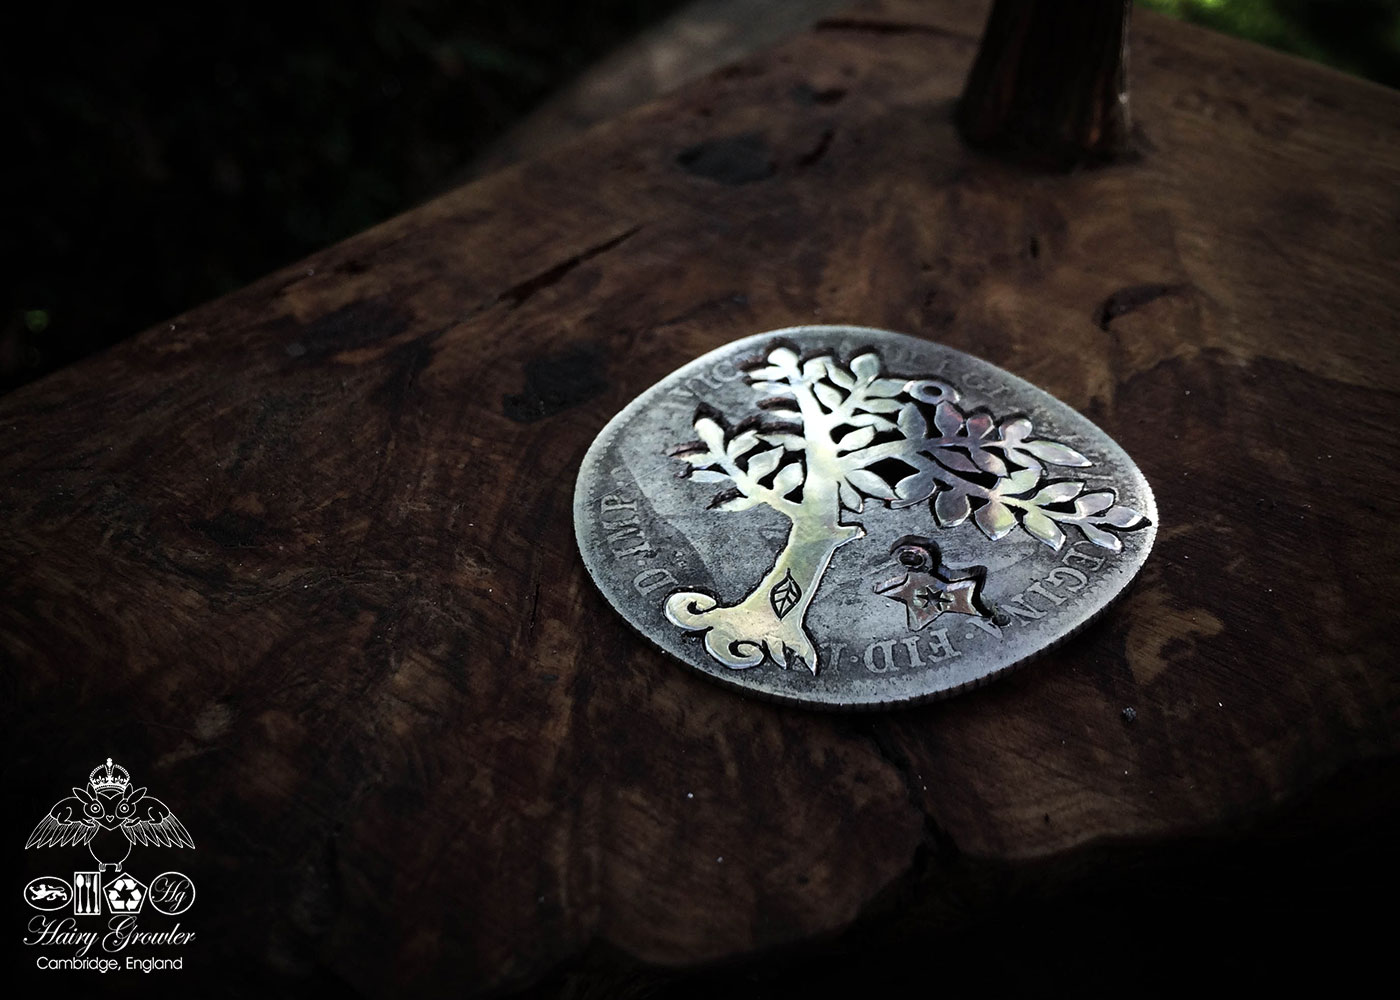 Handmade and upcycled silver spring tree made from a silver coin